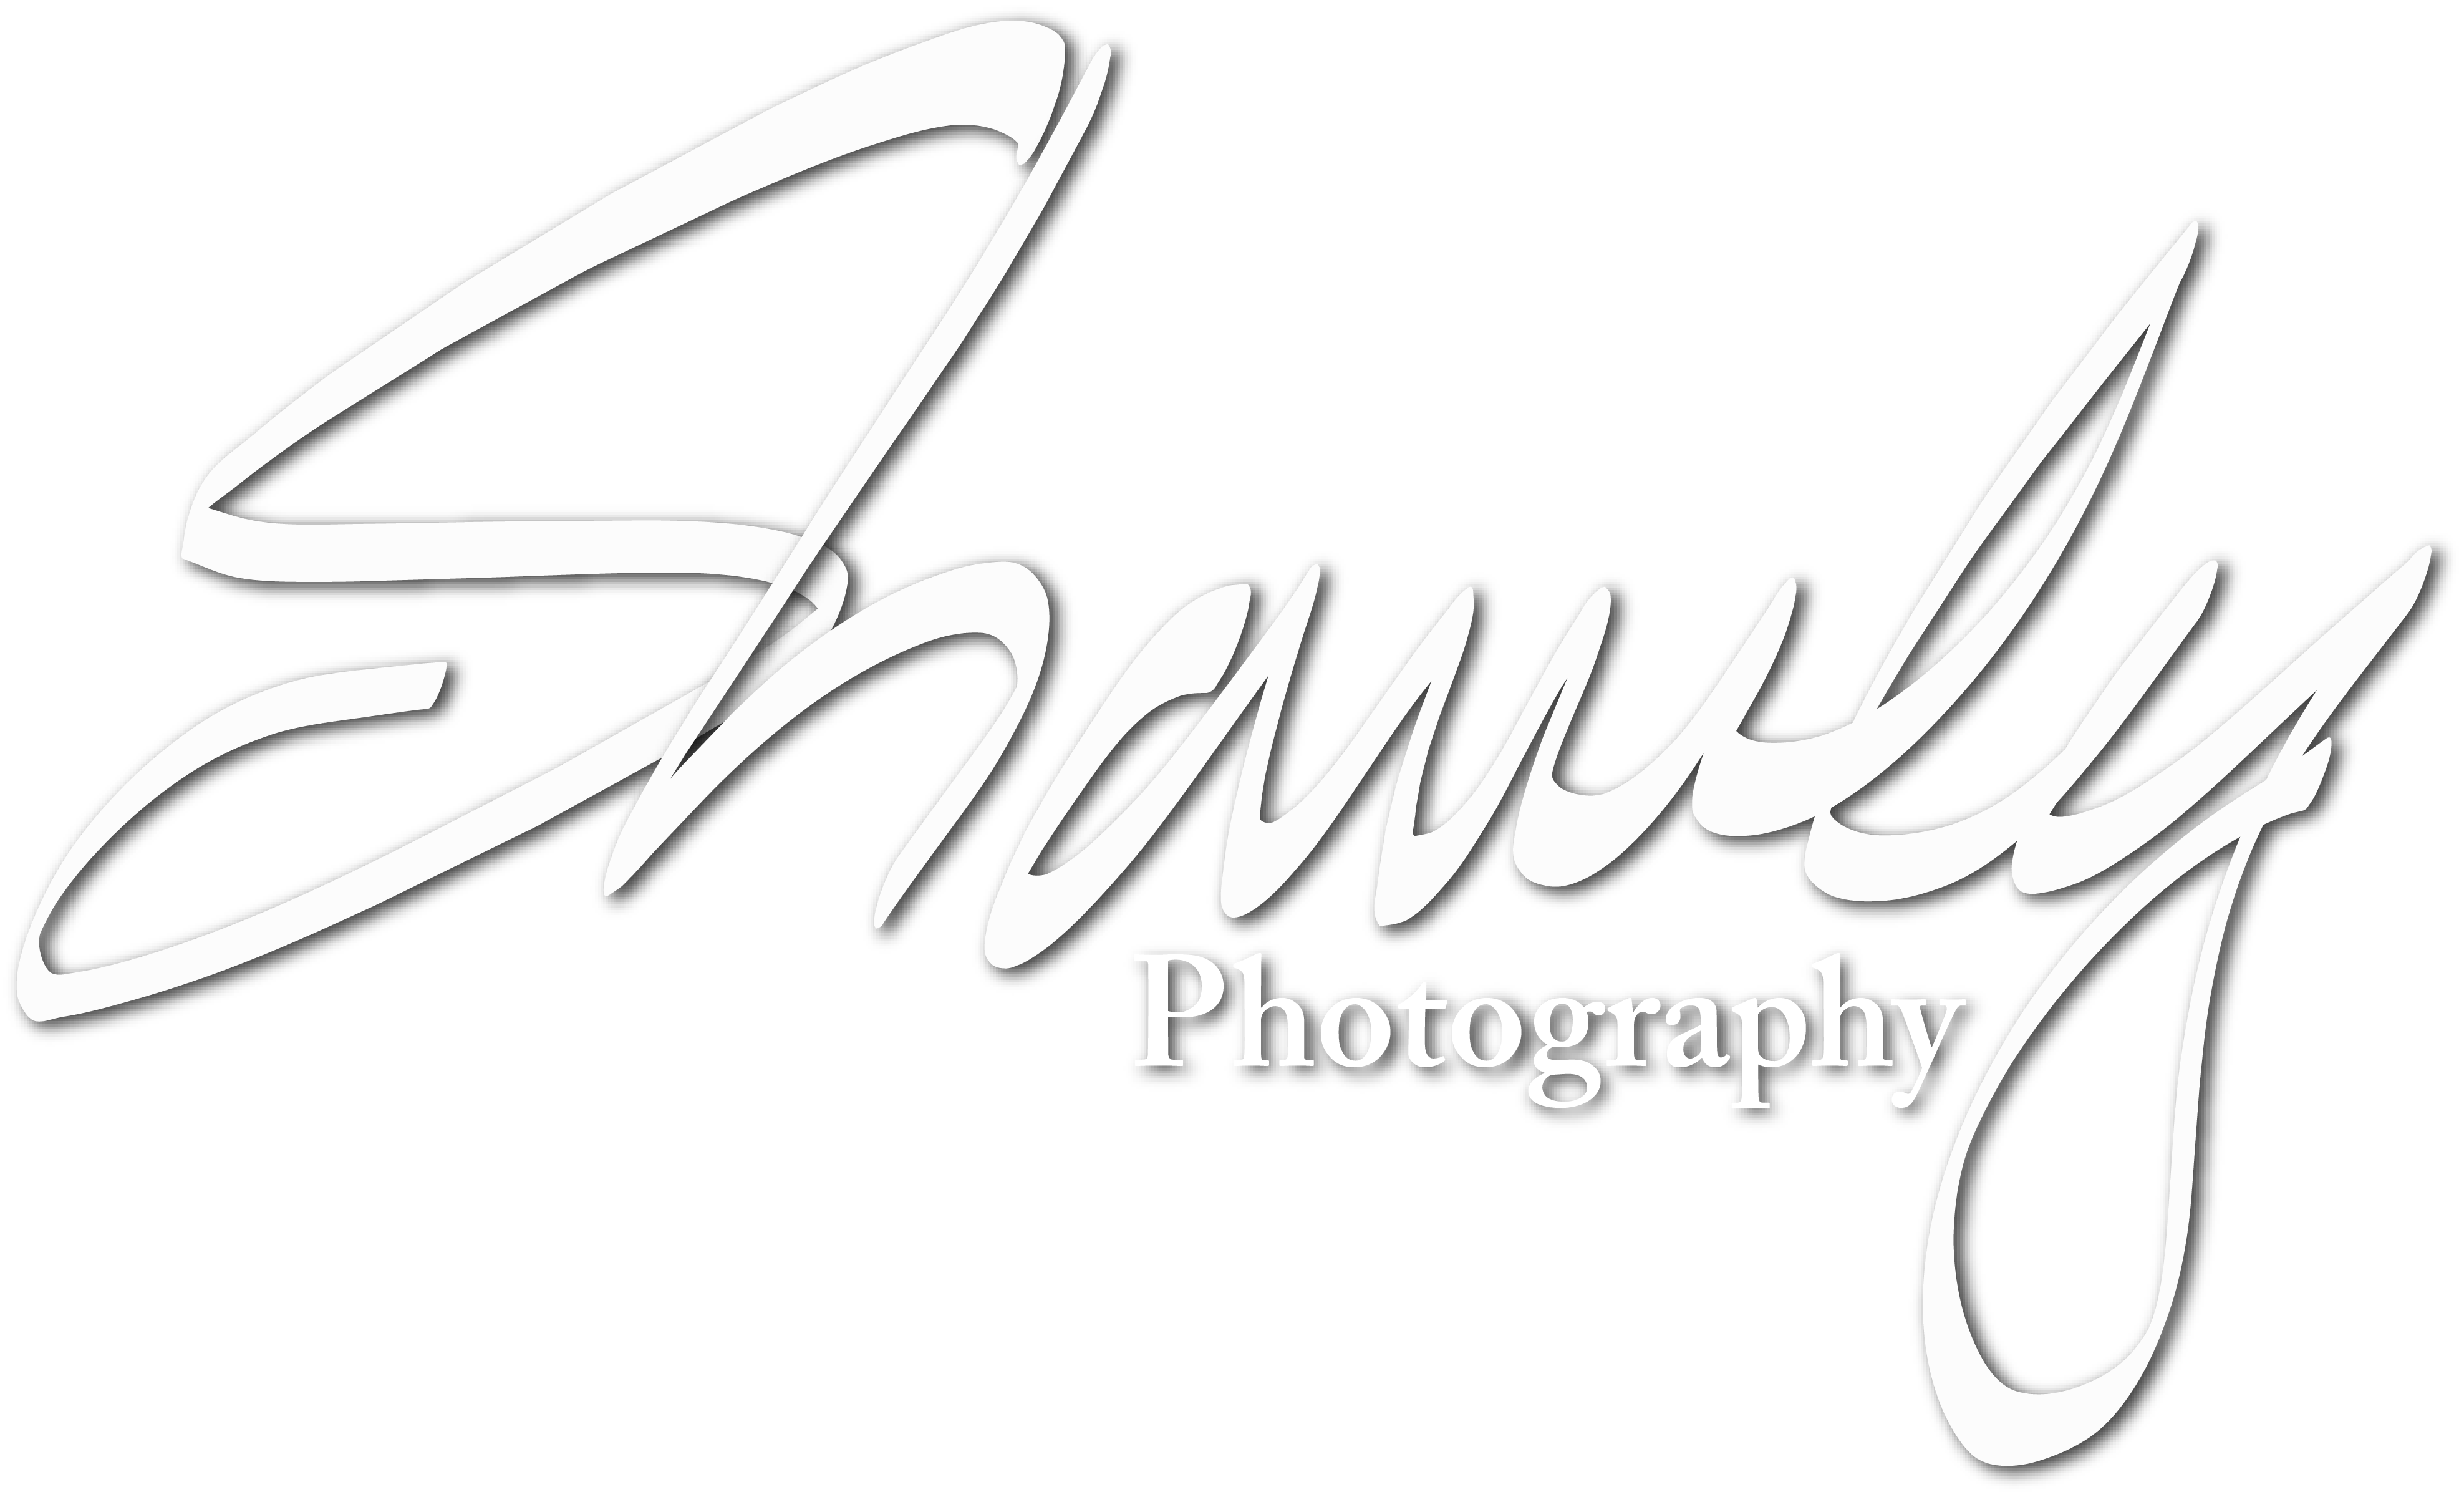 Shawley Photography